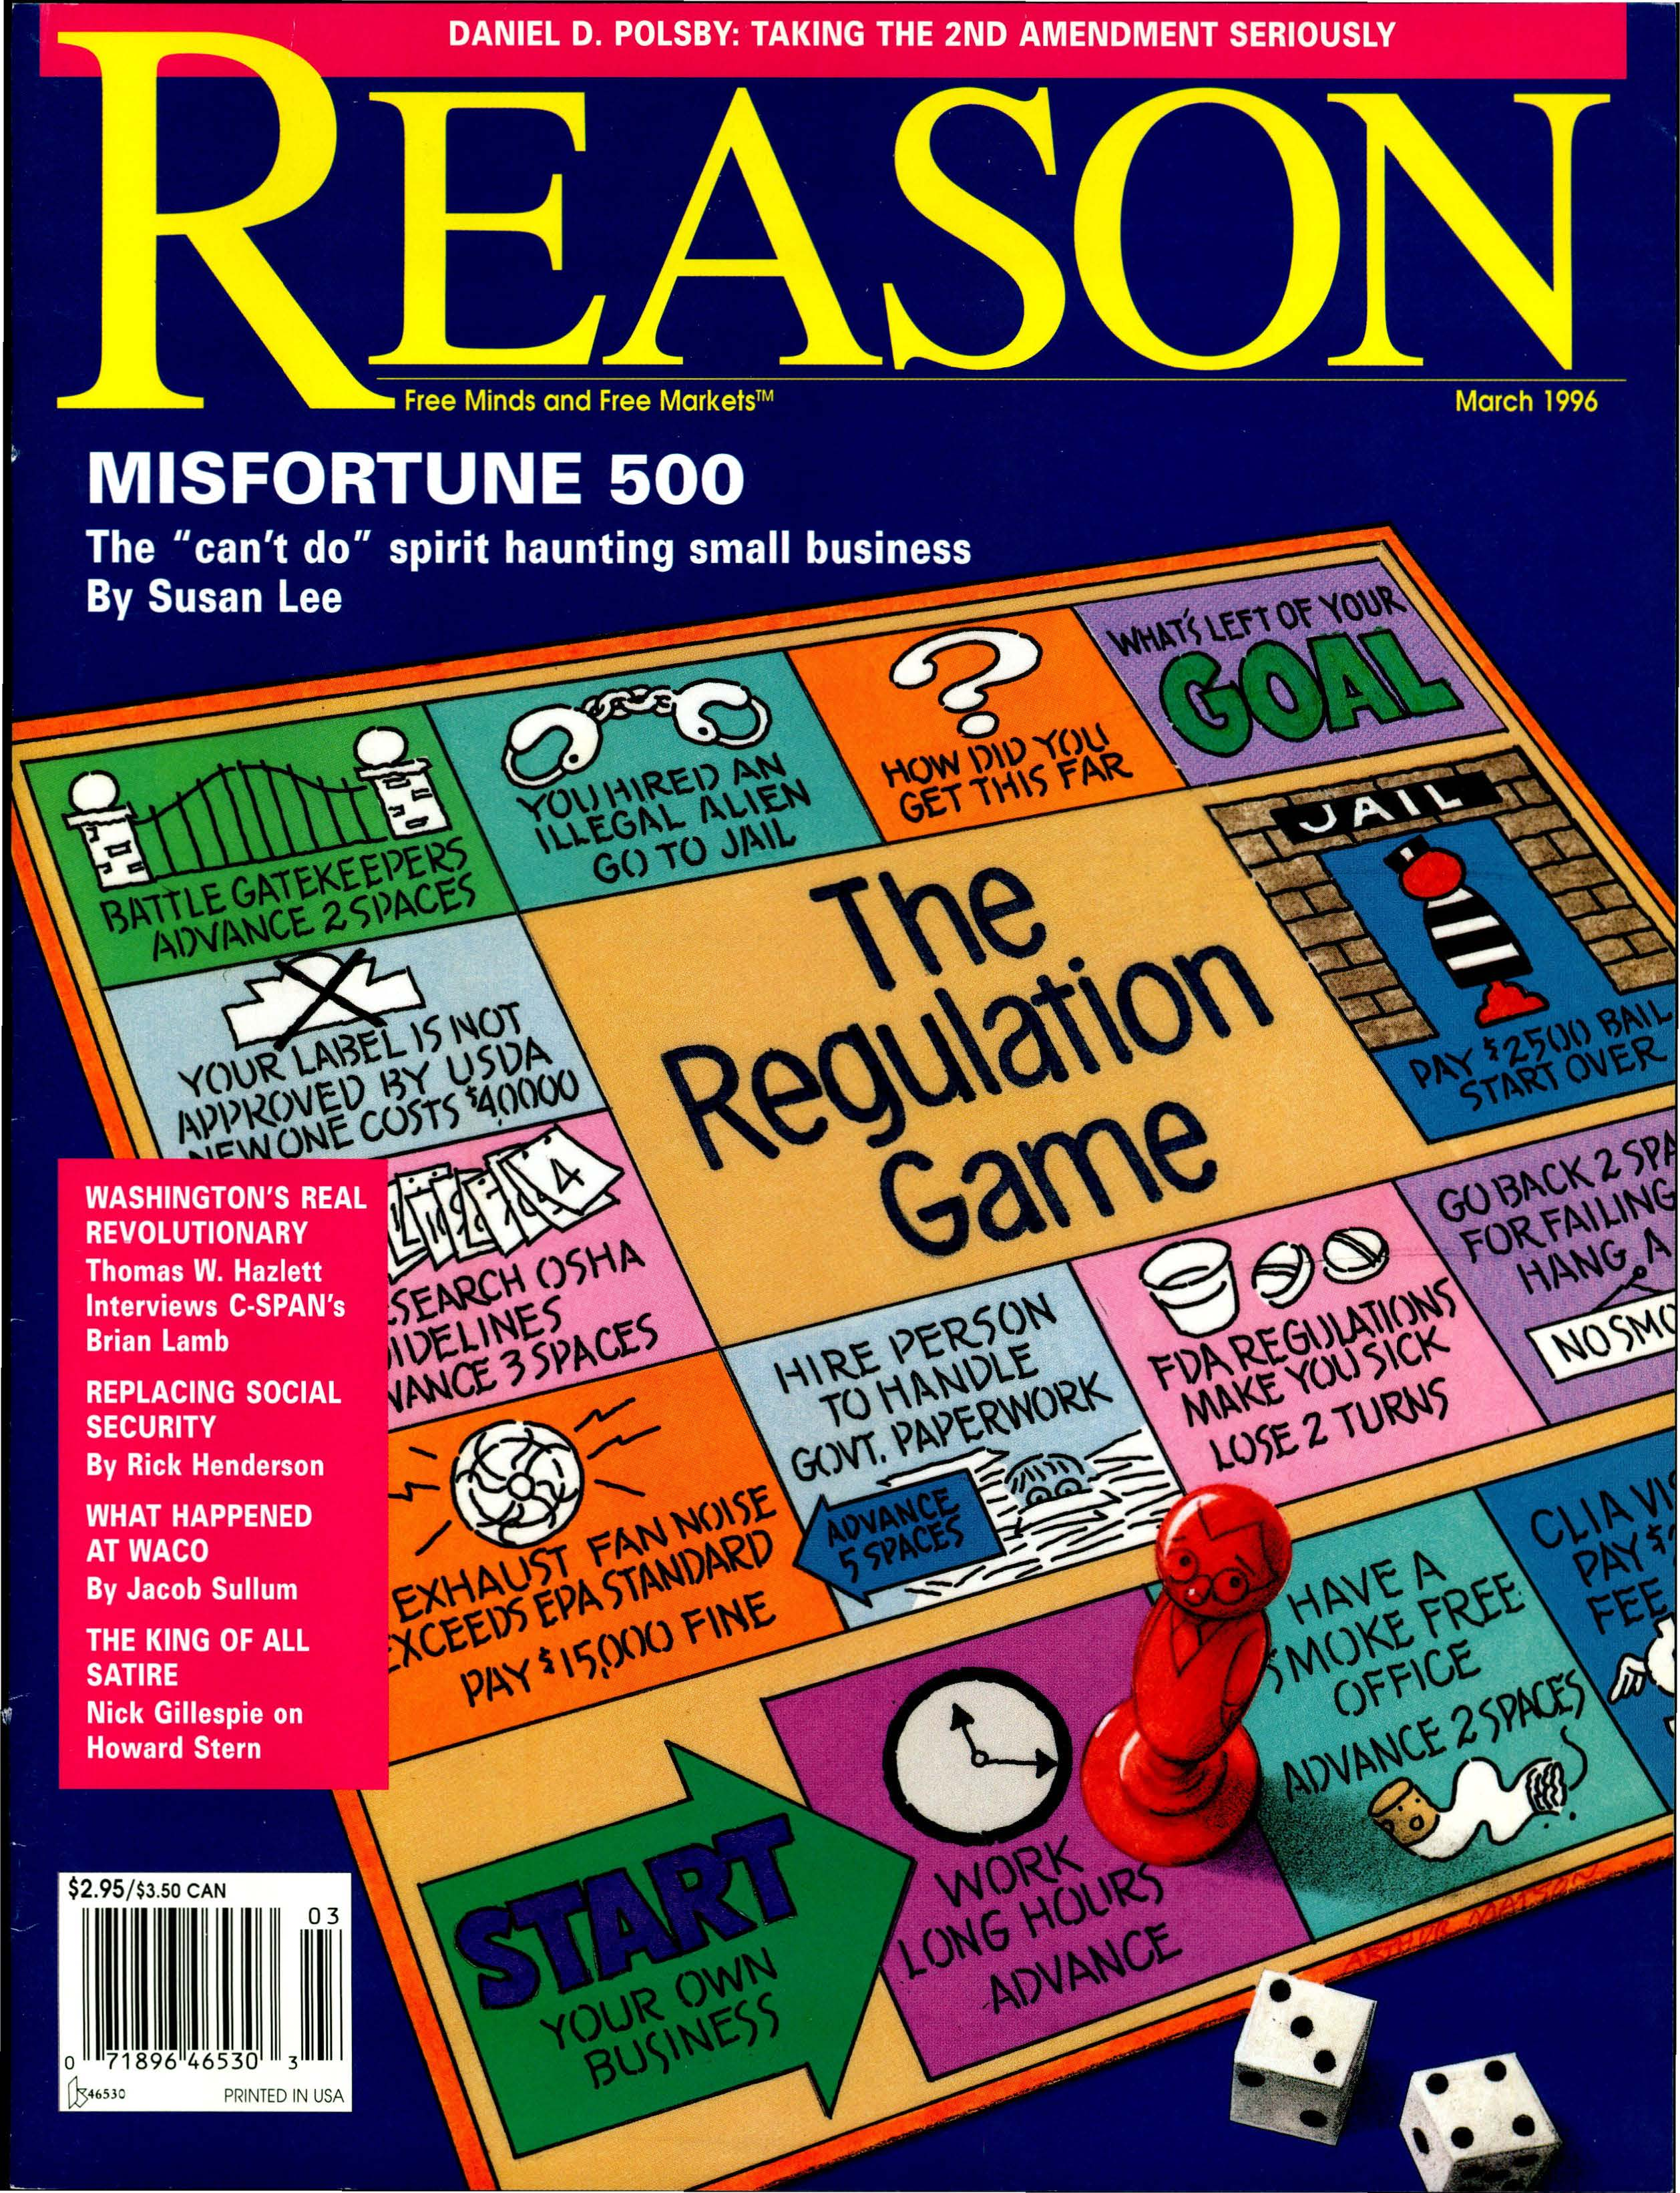 Reason Magazine, March 1996 cover image